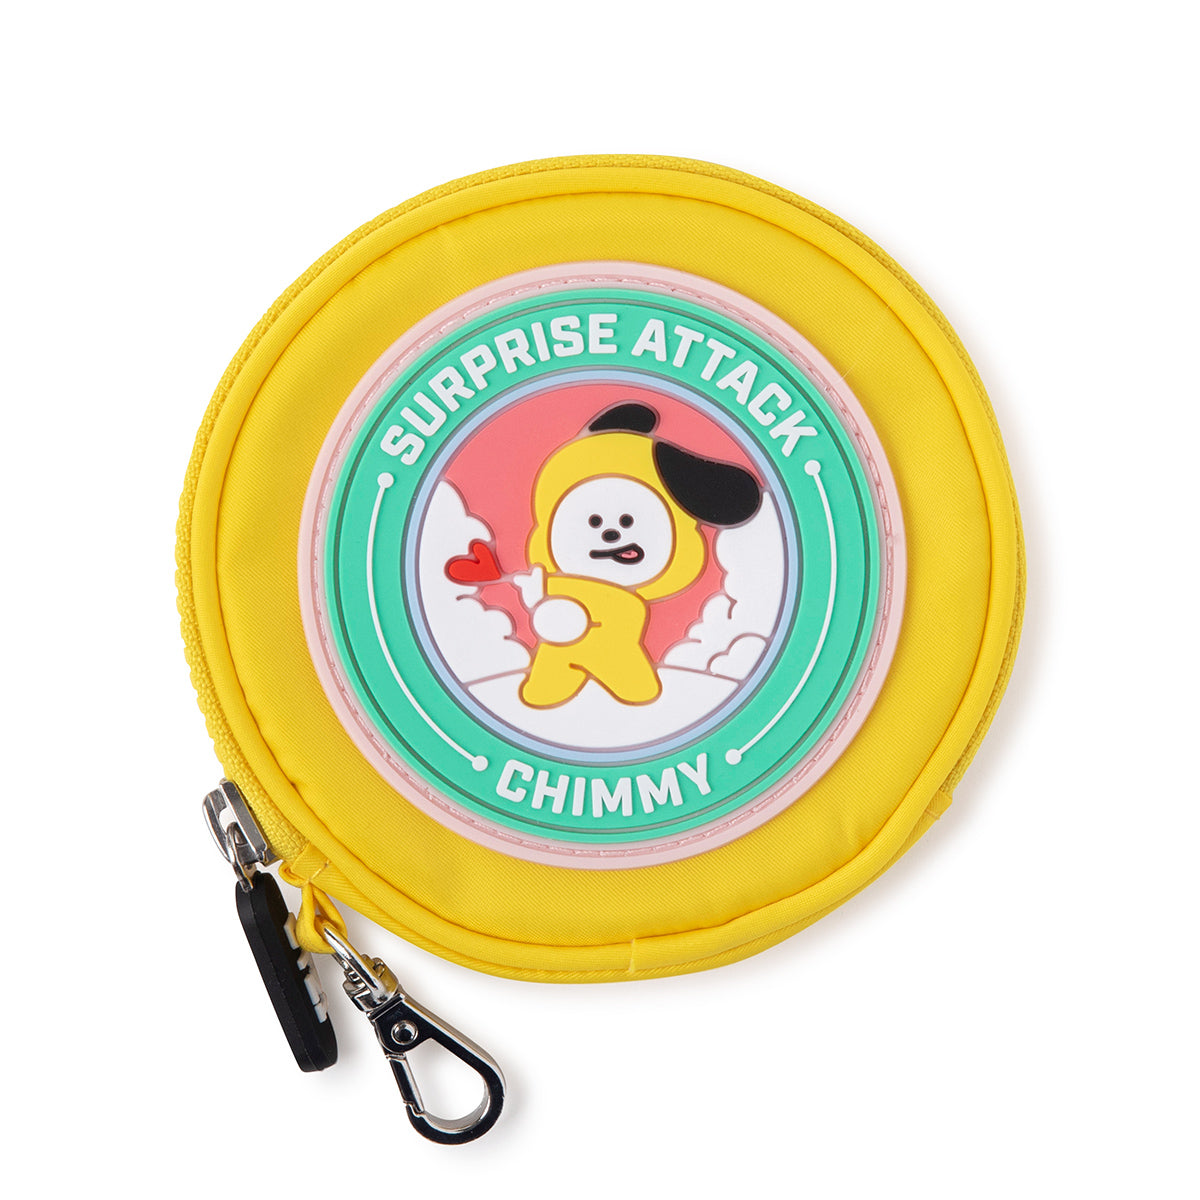 BT21 CHIMMY Wappen Round Coin Purse